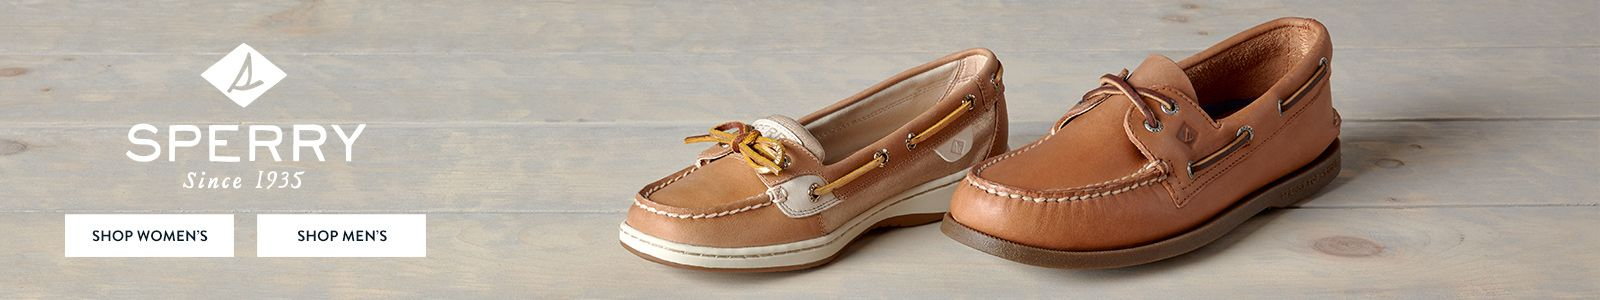 Sperry Since 1935, Shop Women's, Shop Men's